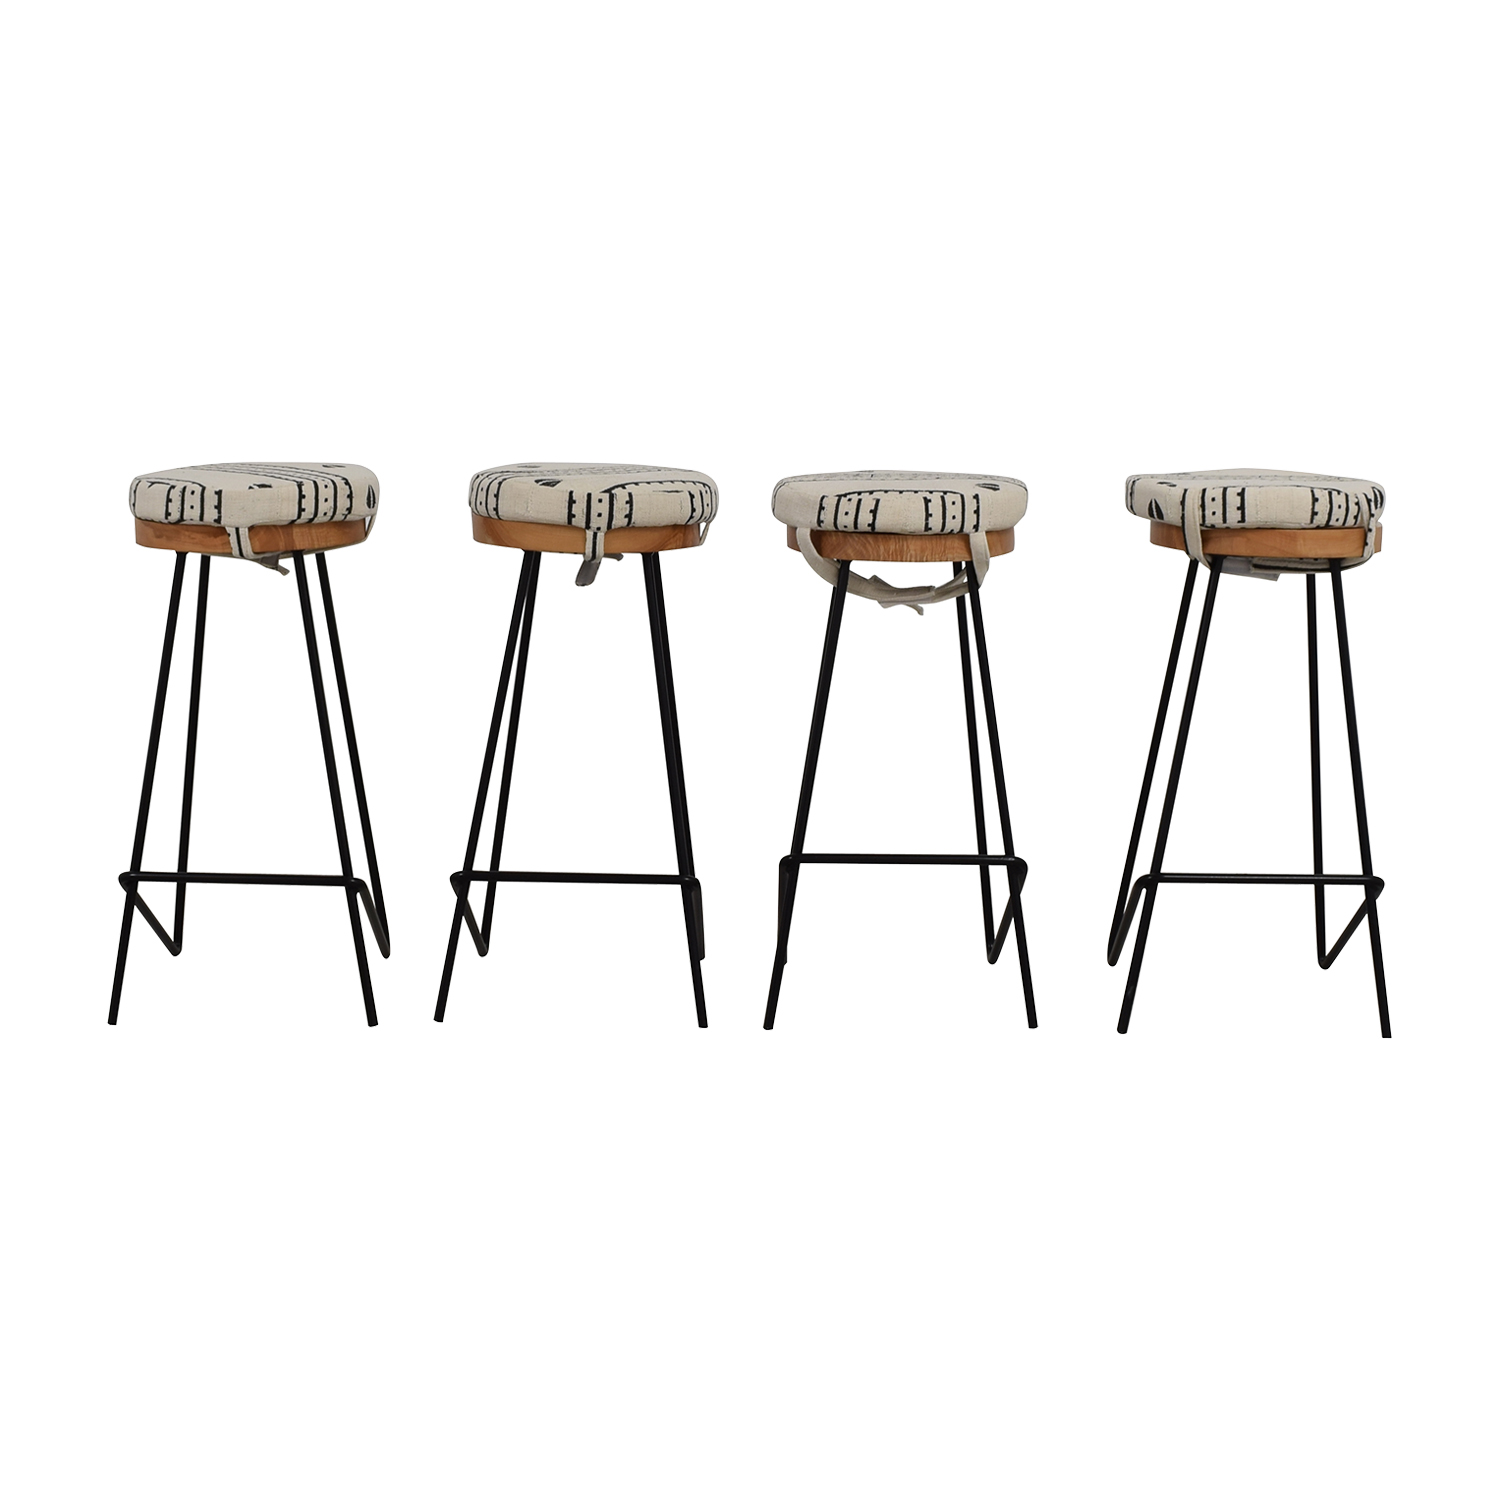 buy Urban Lumber Company Custom Walnut and Steel Bar Stools Urban Lumber Company Chairs